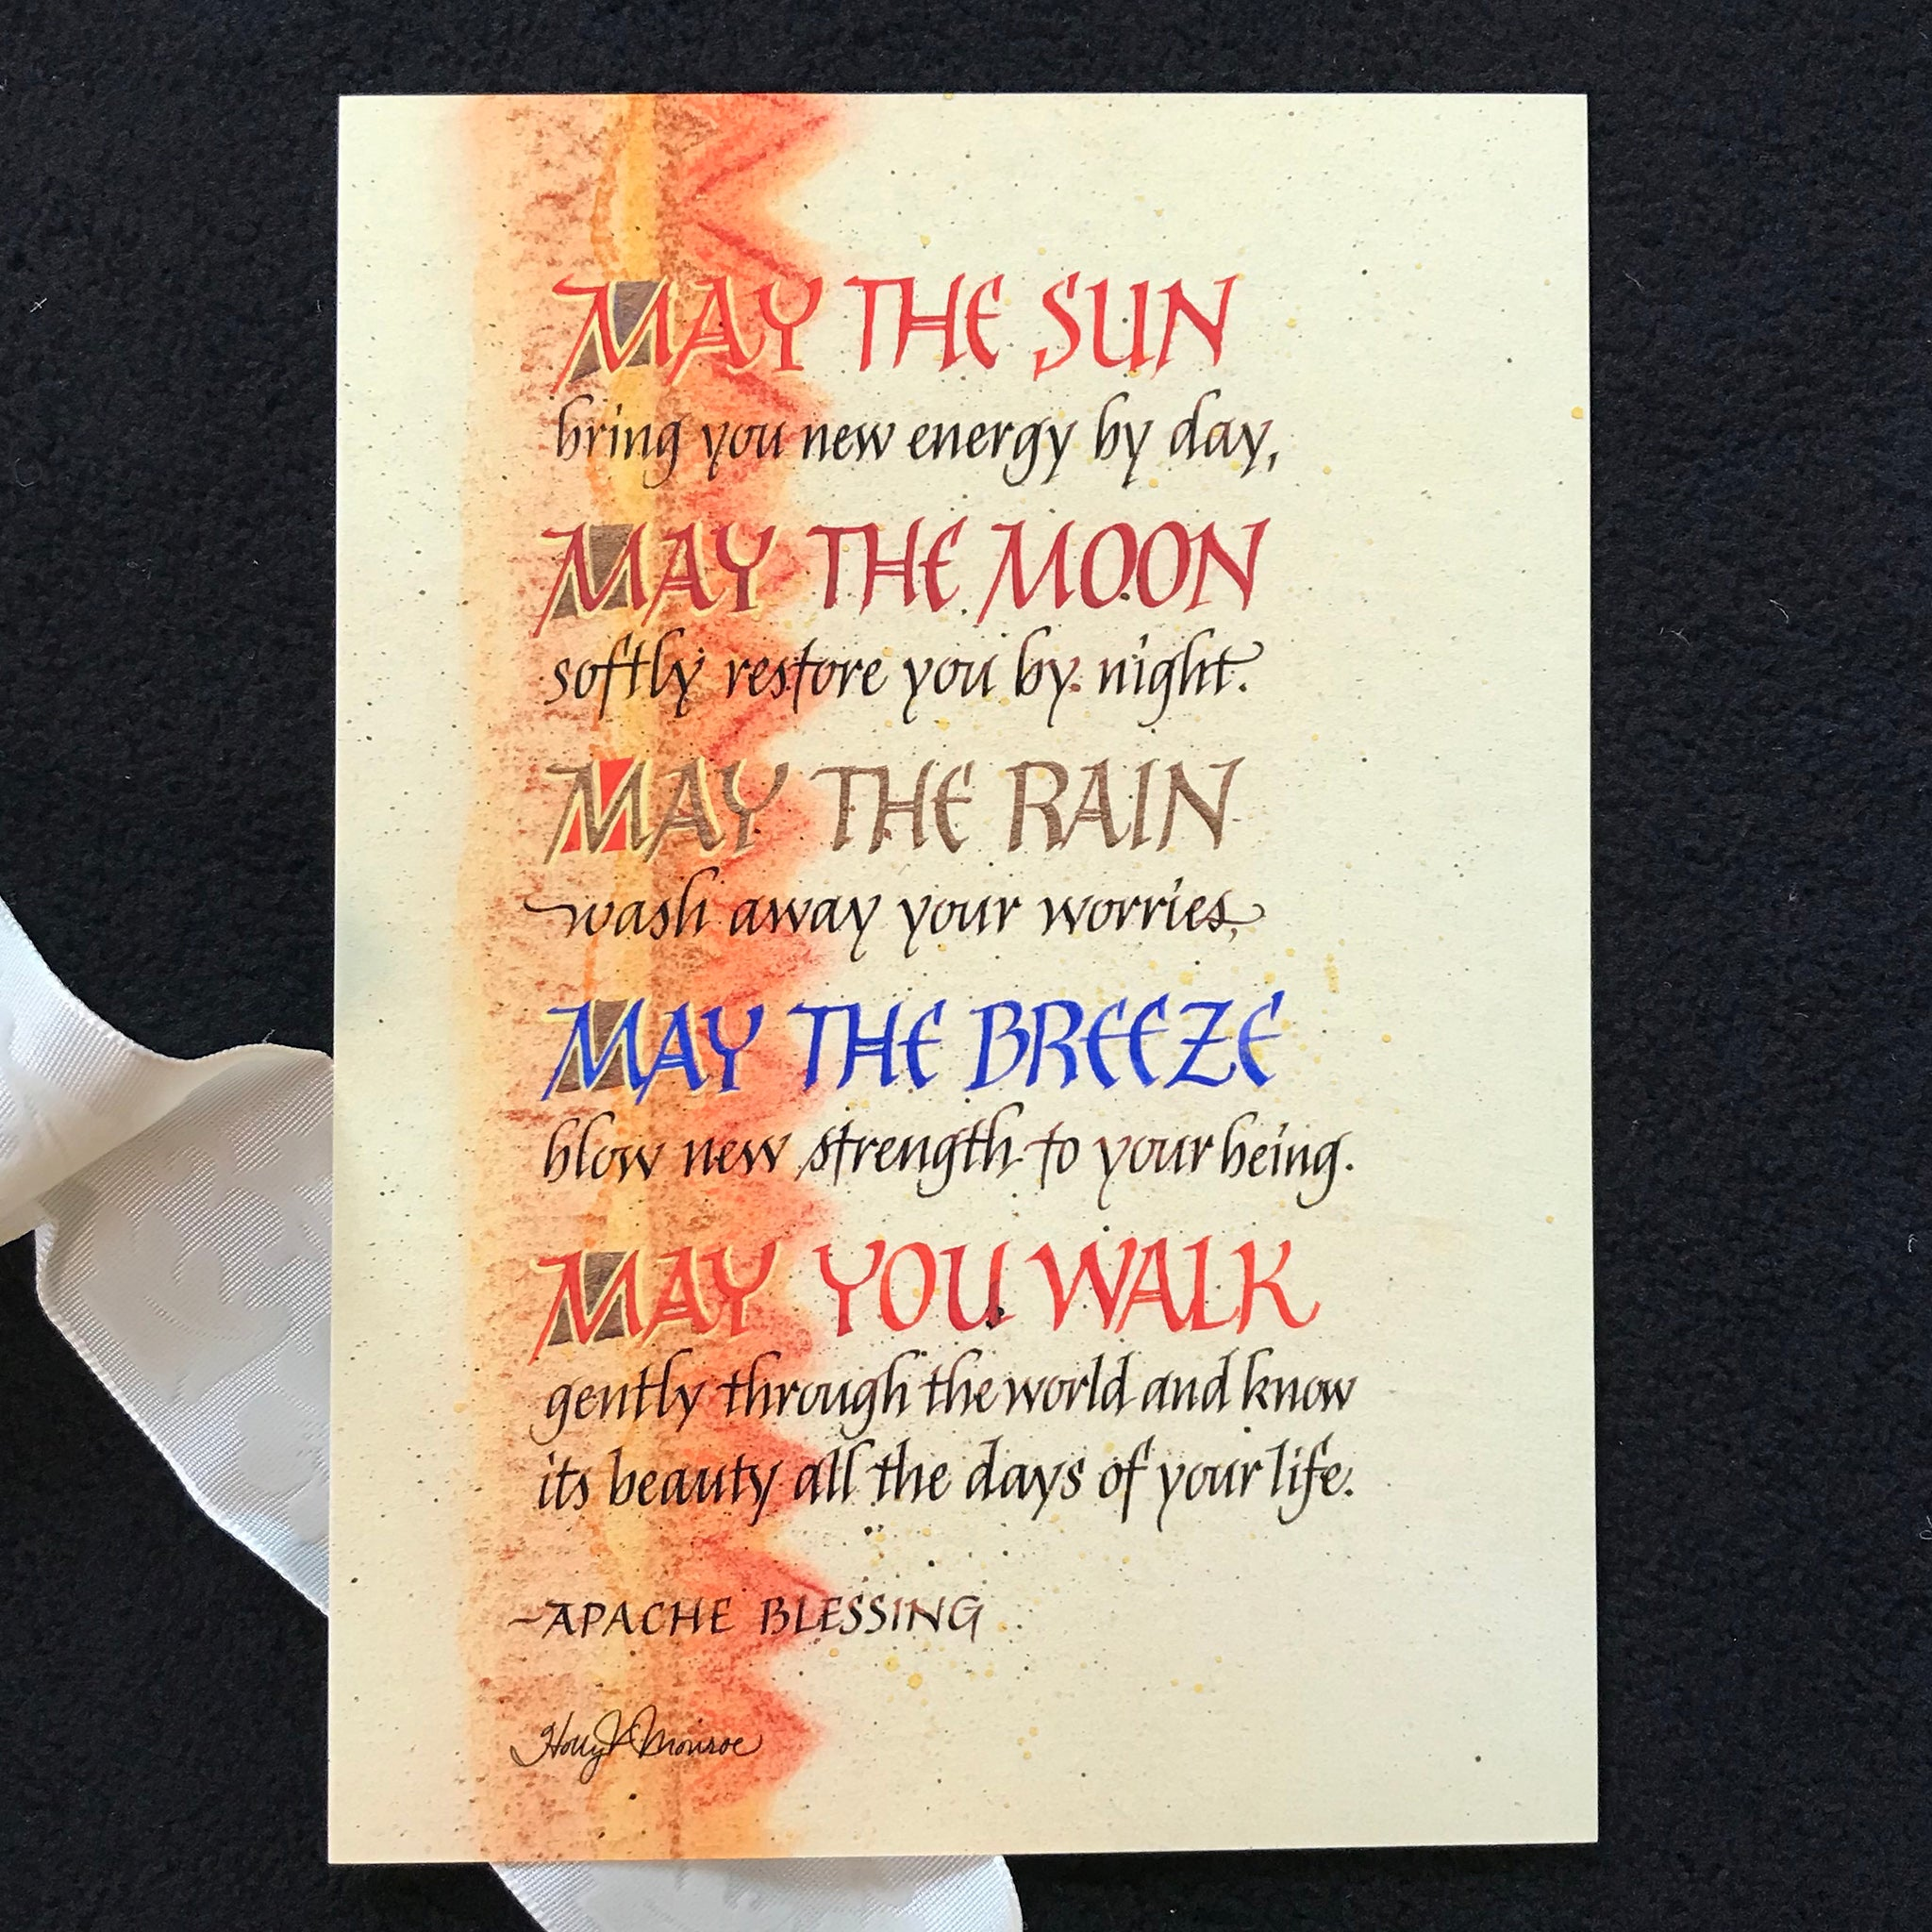 May The Sun - Apache Blessing Fine Art Print Holly Monroe Calligraphy